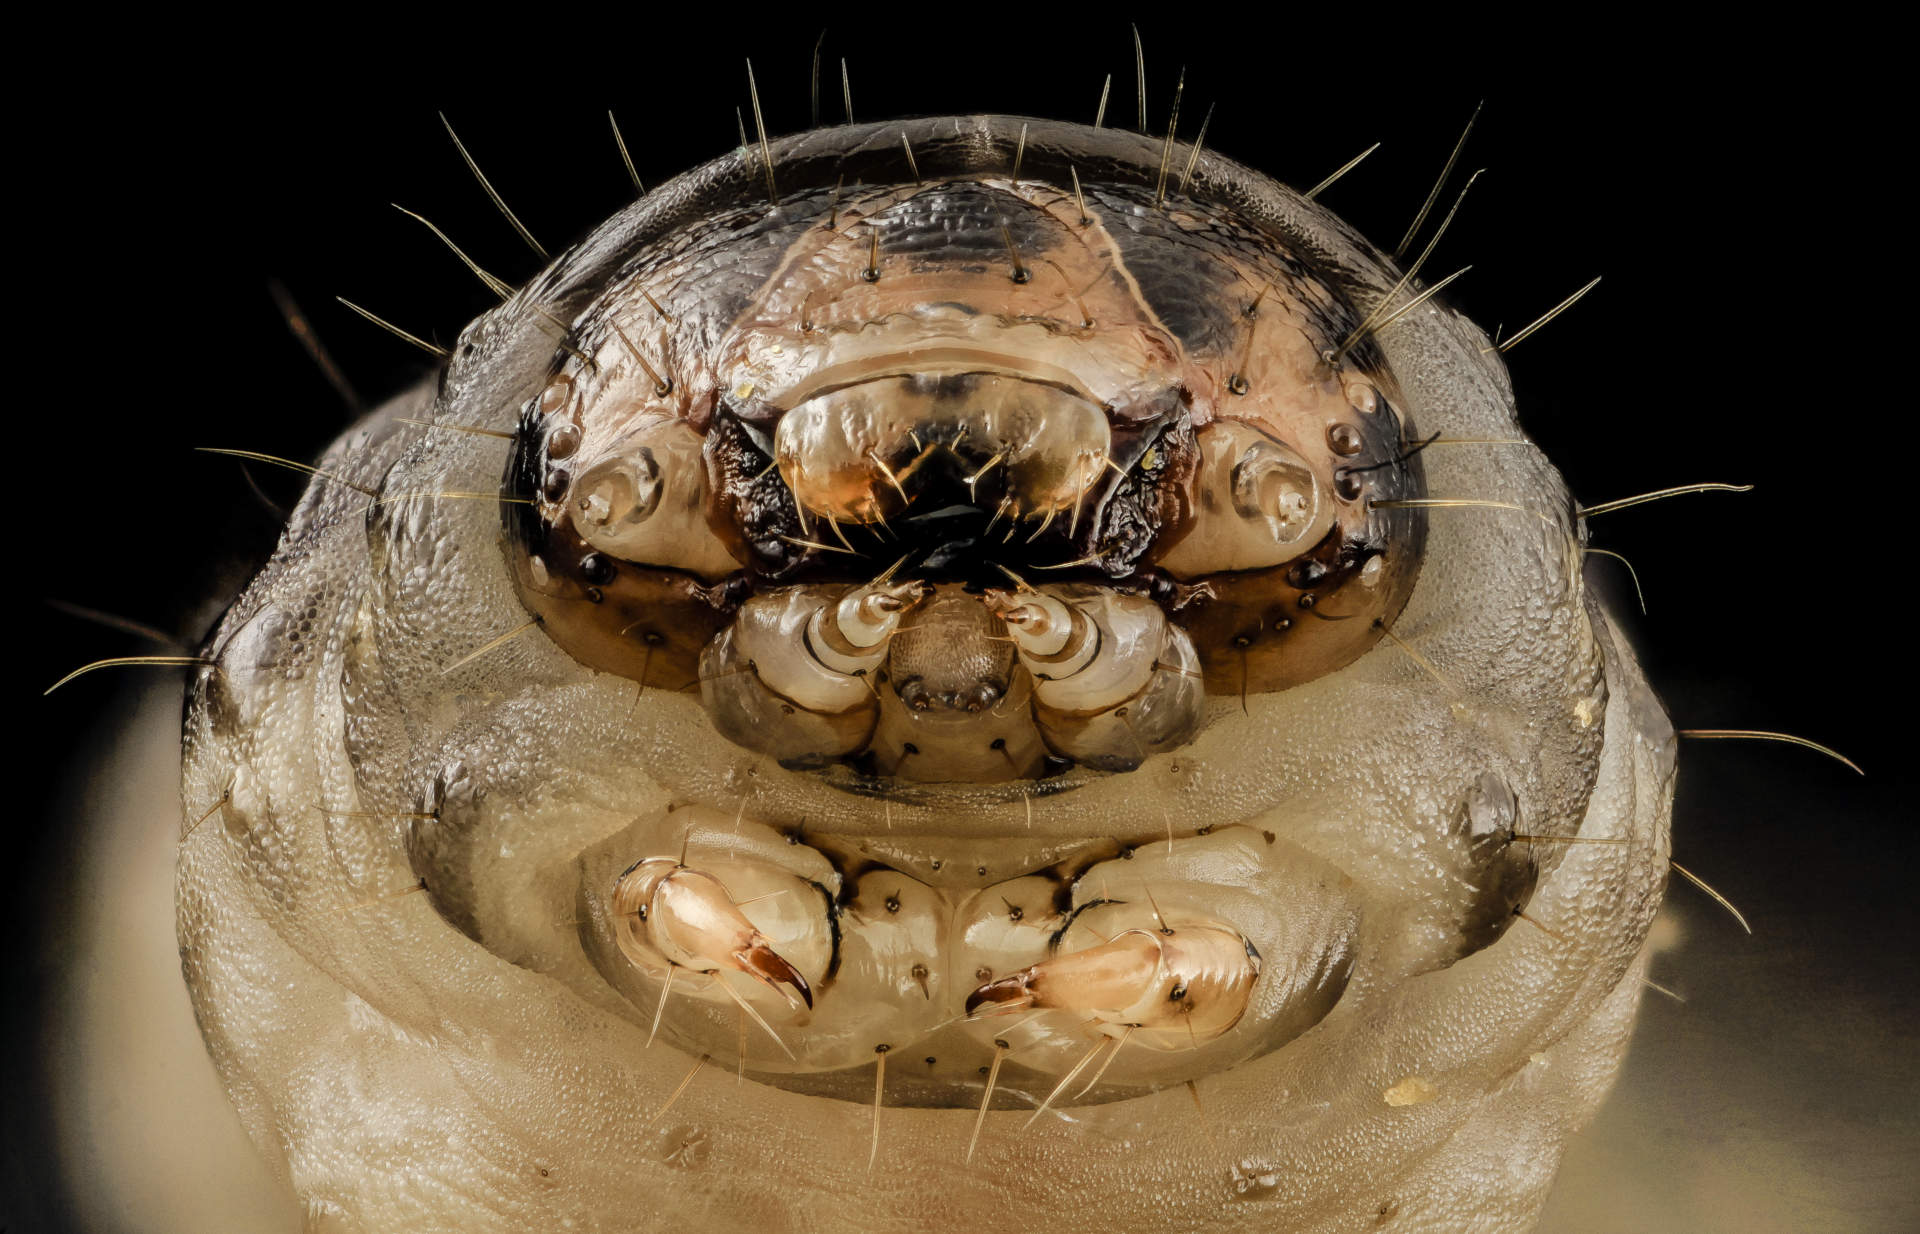 black cutworm face image